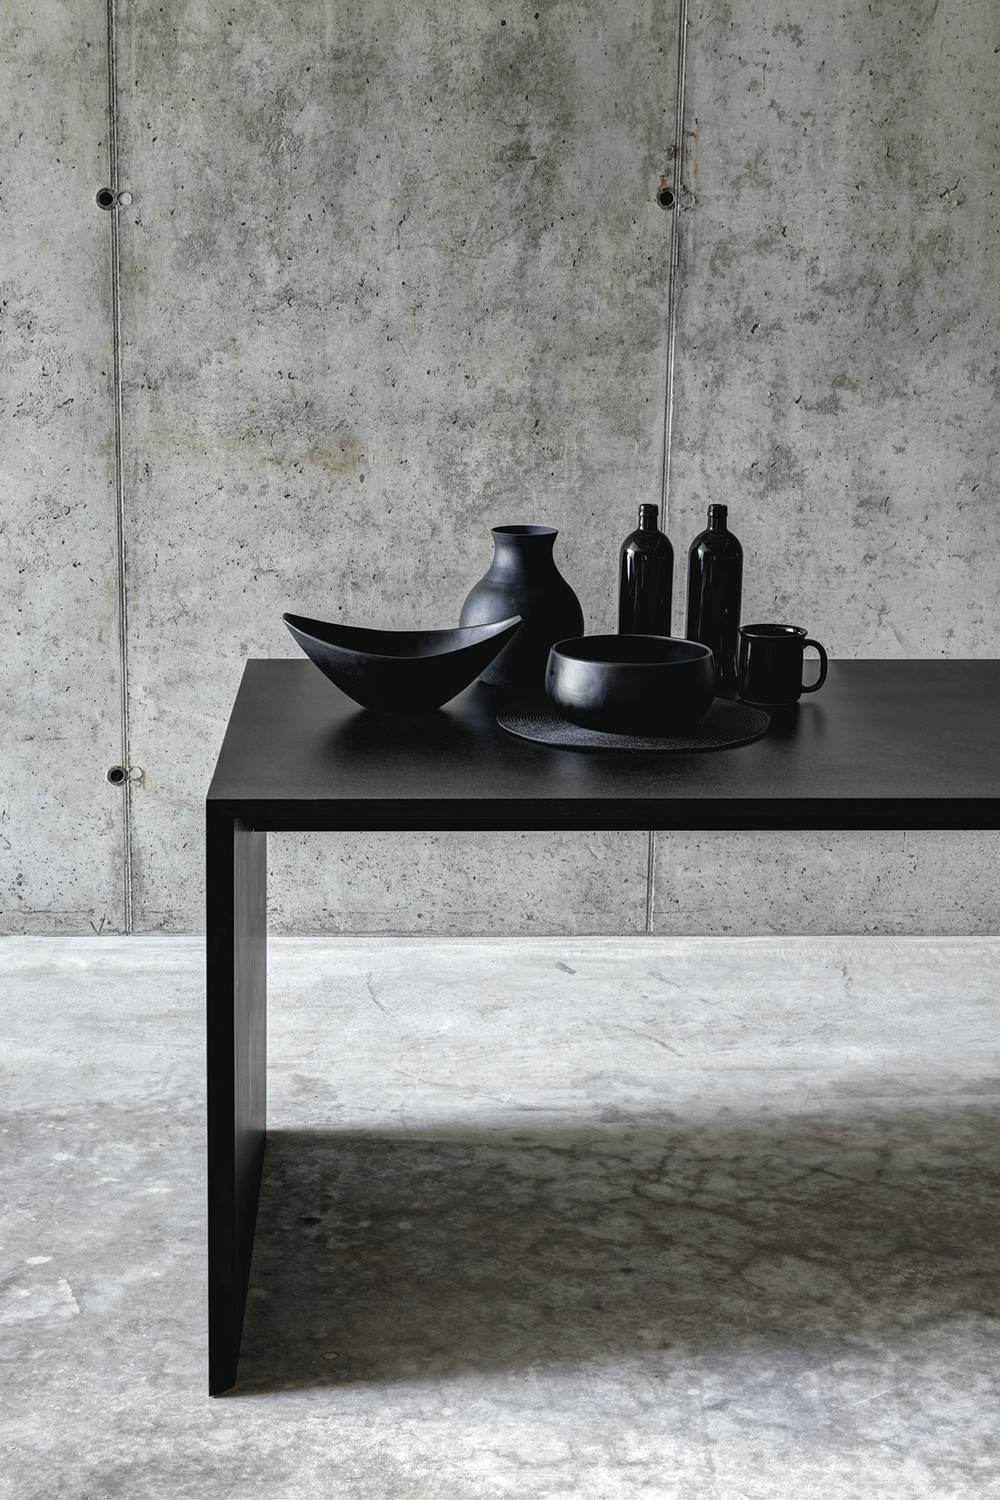 Creative contemporary design inspired by tradition